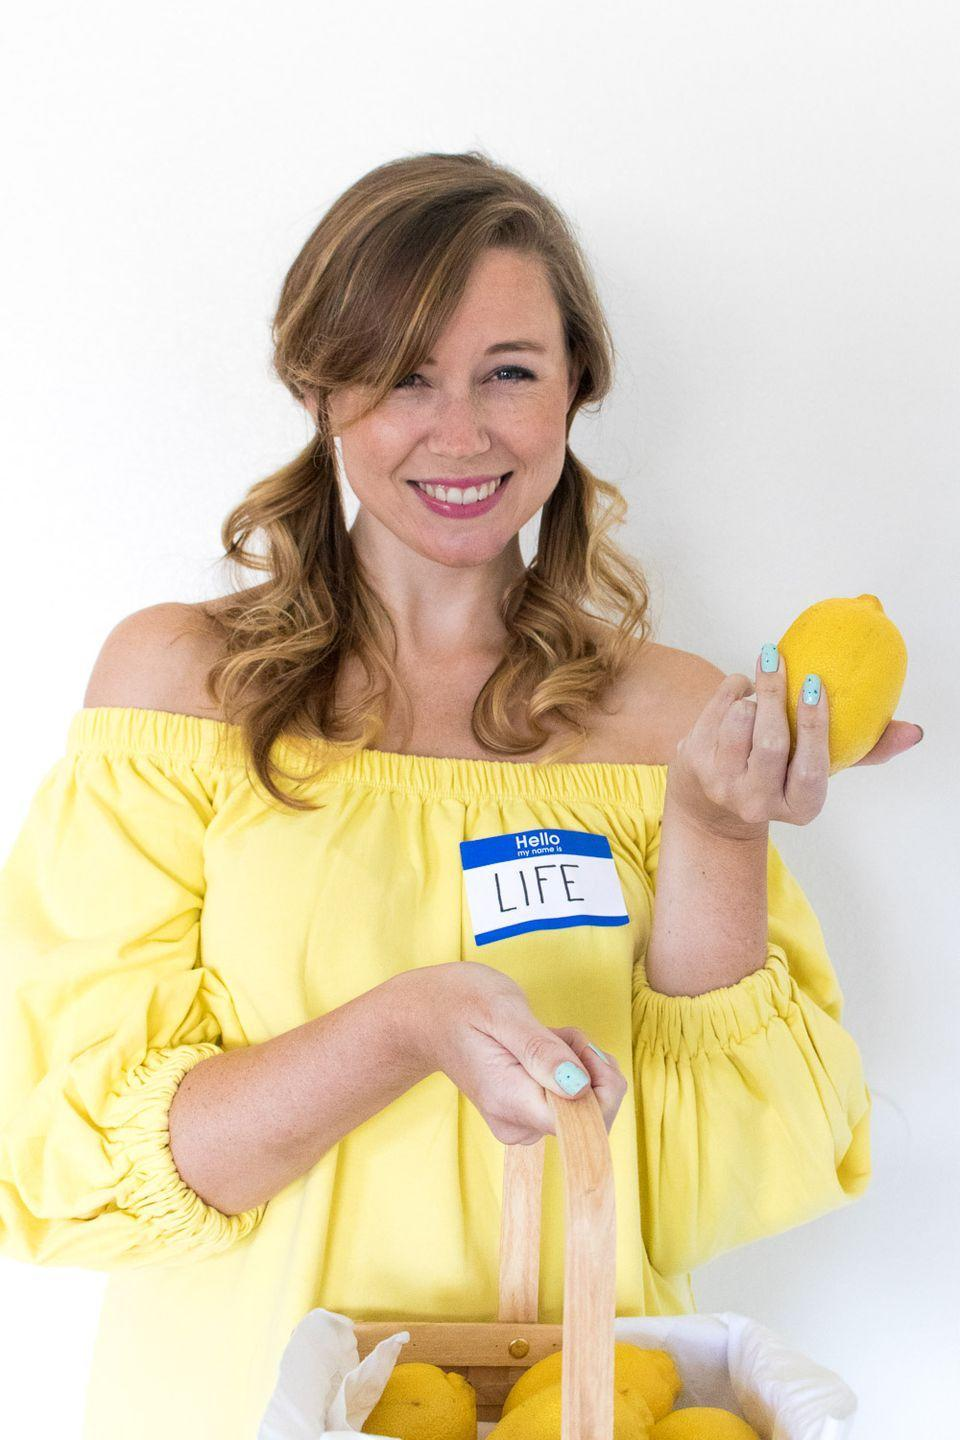 "<p>Make lemonade! All you need is a yellow top or dress, a name tag with the word ""Life,"" and a basket of lemons to recreate <em>Club Crafted</em>'s brilliant Halloween costume.</p><p><em><a href=""https://www.clubcrafted.com/2017/10/24/4-last-minute-idiom-halloween-costumes/"" rel=""nofollow noopener"" target=""_blank"" data-ylk=""slk:See more at Club Crafted »"" class=""link rapid-noclick-resp"">See more at Club Crafted »</a></em></p><p><a class=""link rapid-noclick-resp"" href=""https://www.amazon.com/MOLERANI-Womens-Sleeve-Dresses-Casual/dp/B07S722D6D/ref=sr_1_1?tag=syn-yahoo-20&ascsubtag=%5Bartid%7C10055.g.3848%5Bsrc%7Cyahoo-us"" rel=""nofollow noopener"" target=""_blank"" data-ylk=""slk:SHOP YELLOW DRESSES"">SHOP YELLOW DRESSES</a><br></p>"